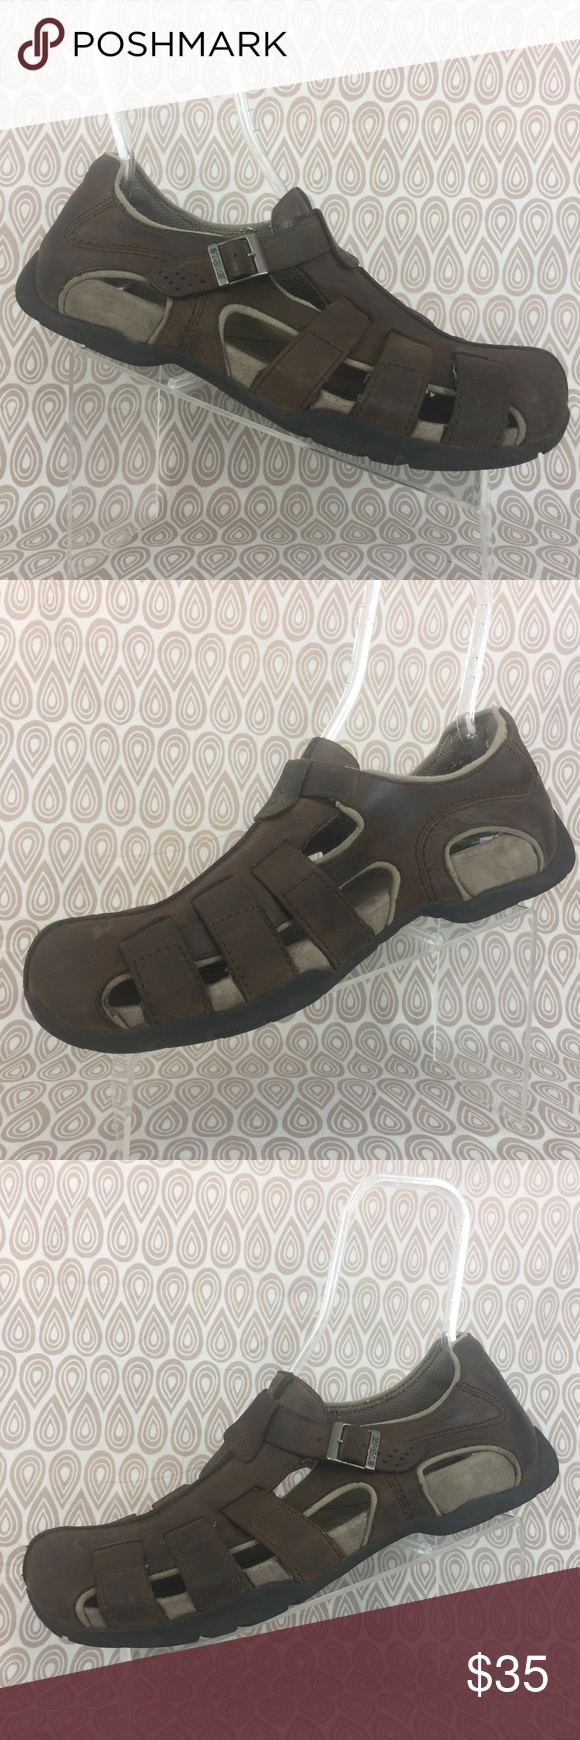 d9c99b050054 TEVA Cardenas Men s Fisherman Sandals Size 14 S276 cleaned and sanitized  scuffs on uppers dirty insoles